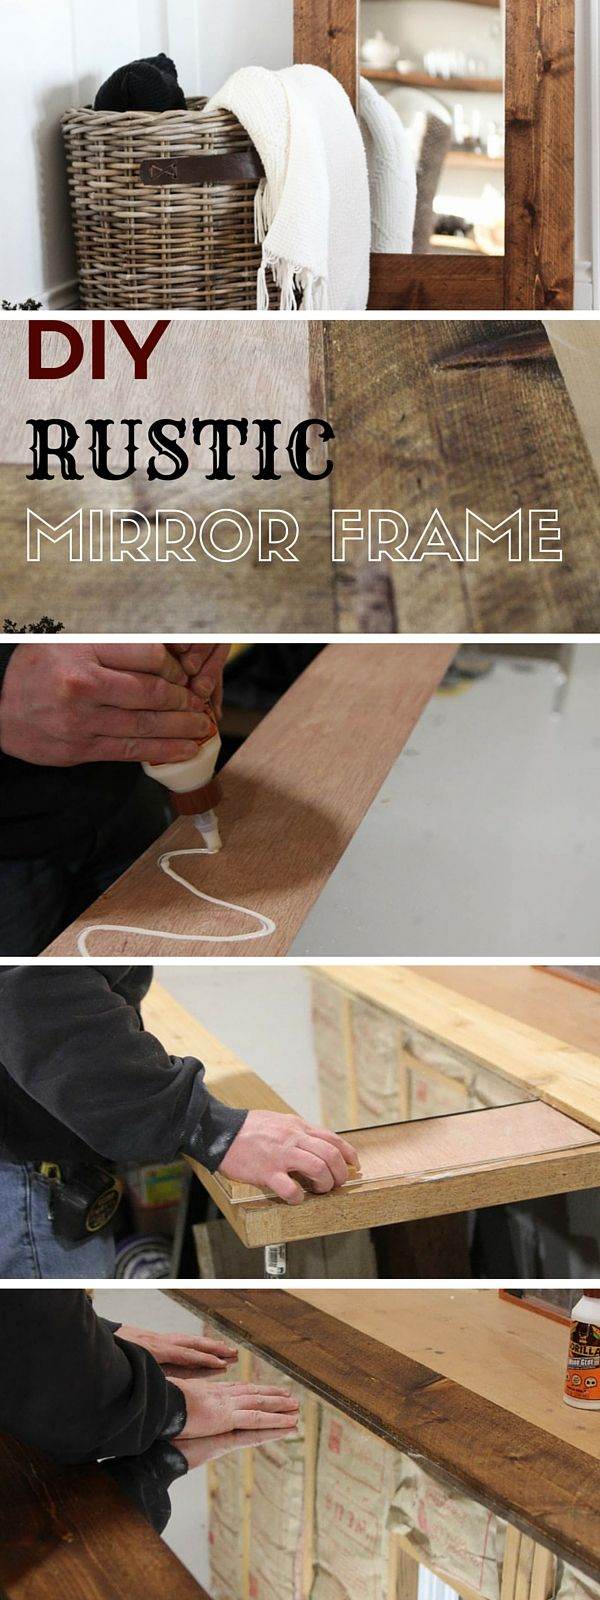 Check out the tutorial: #DIY Rustic Mirror Frame #crafts #rustic #homedecor